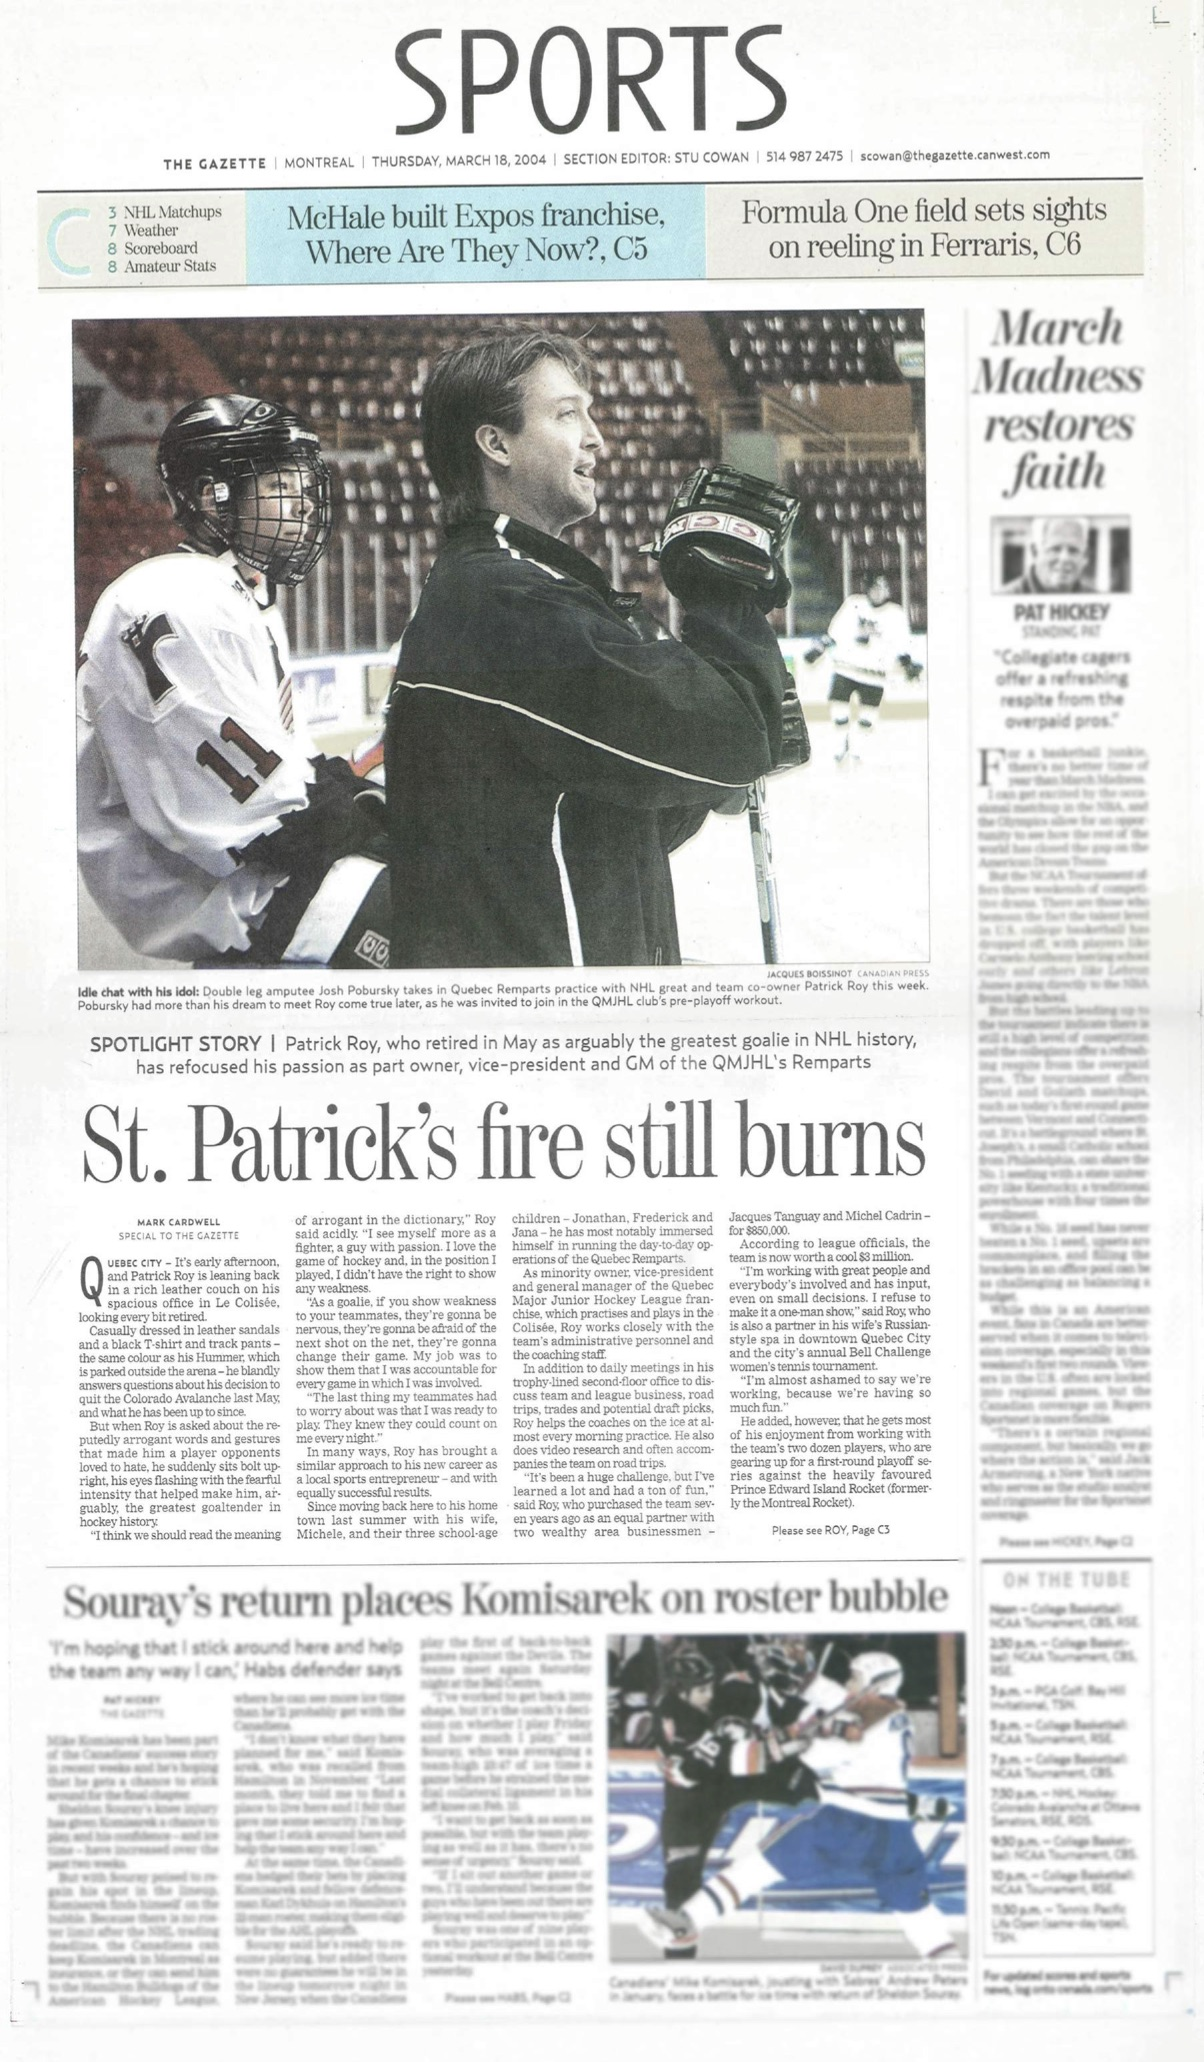 st_patricks_fire_still_burns